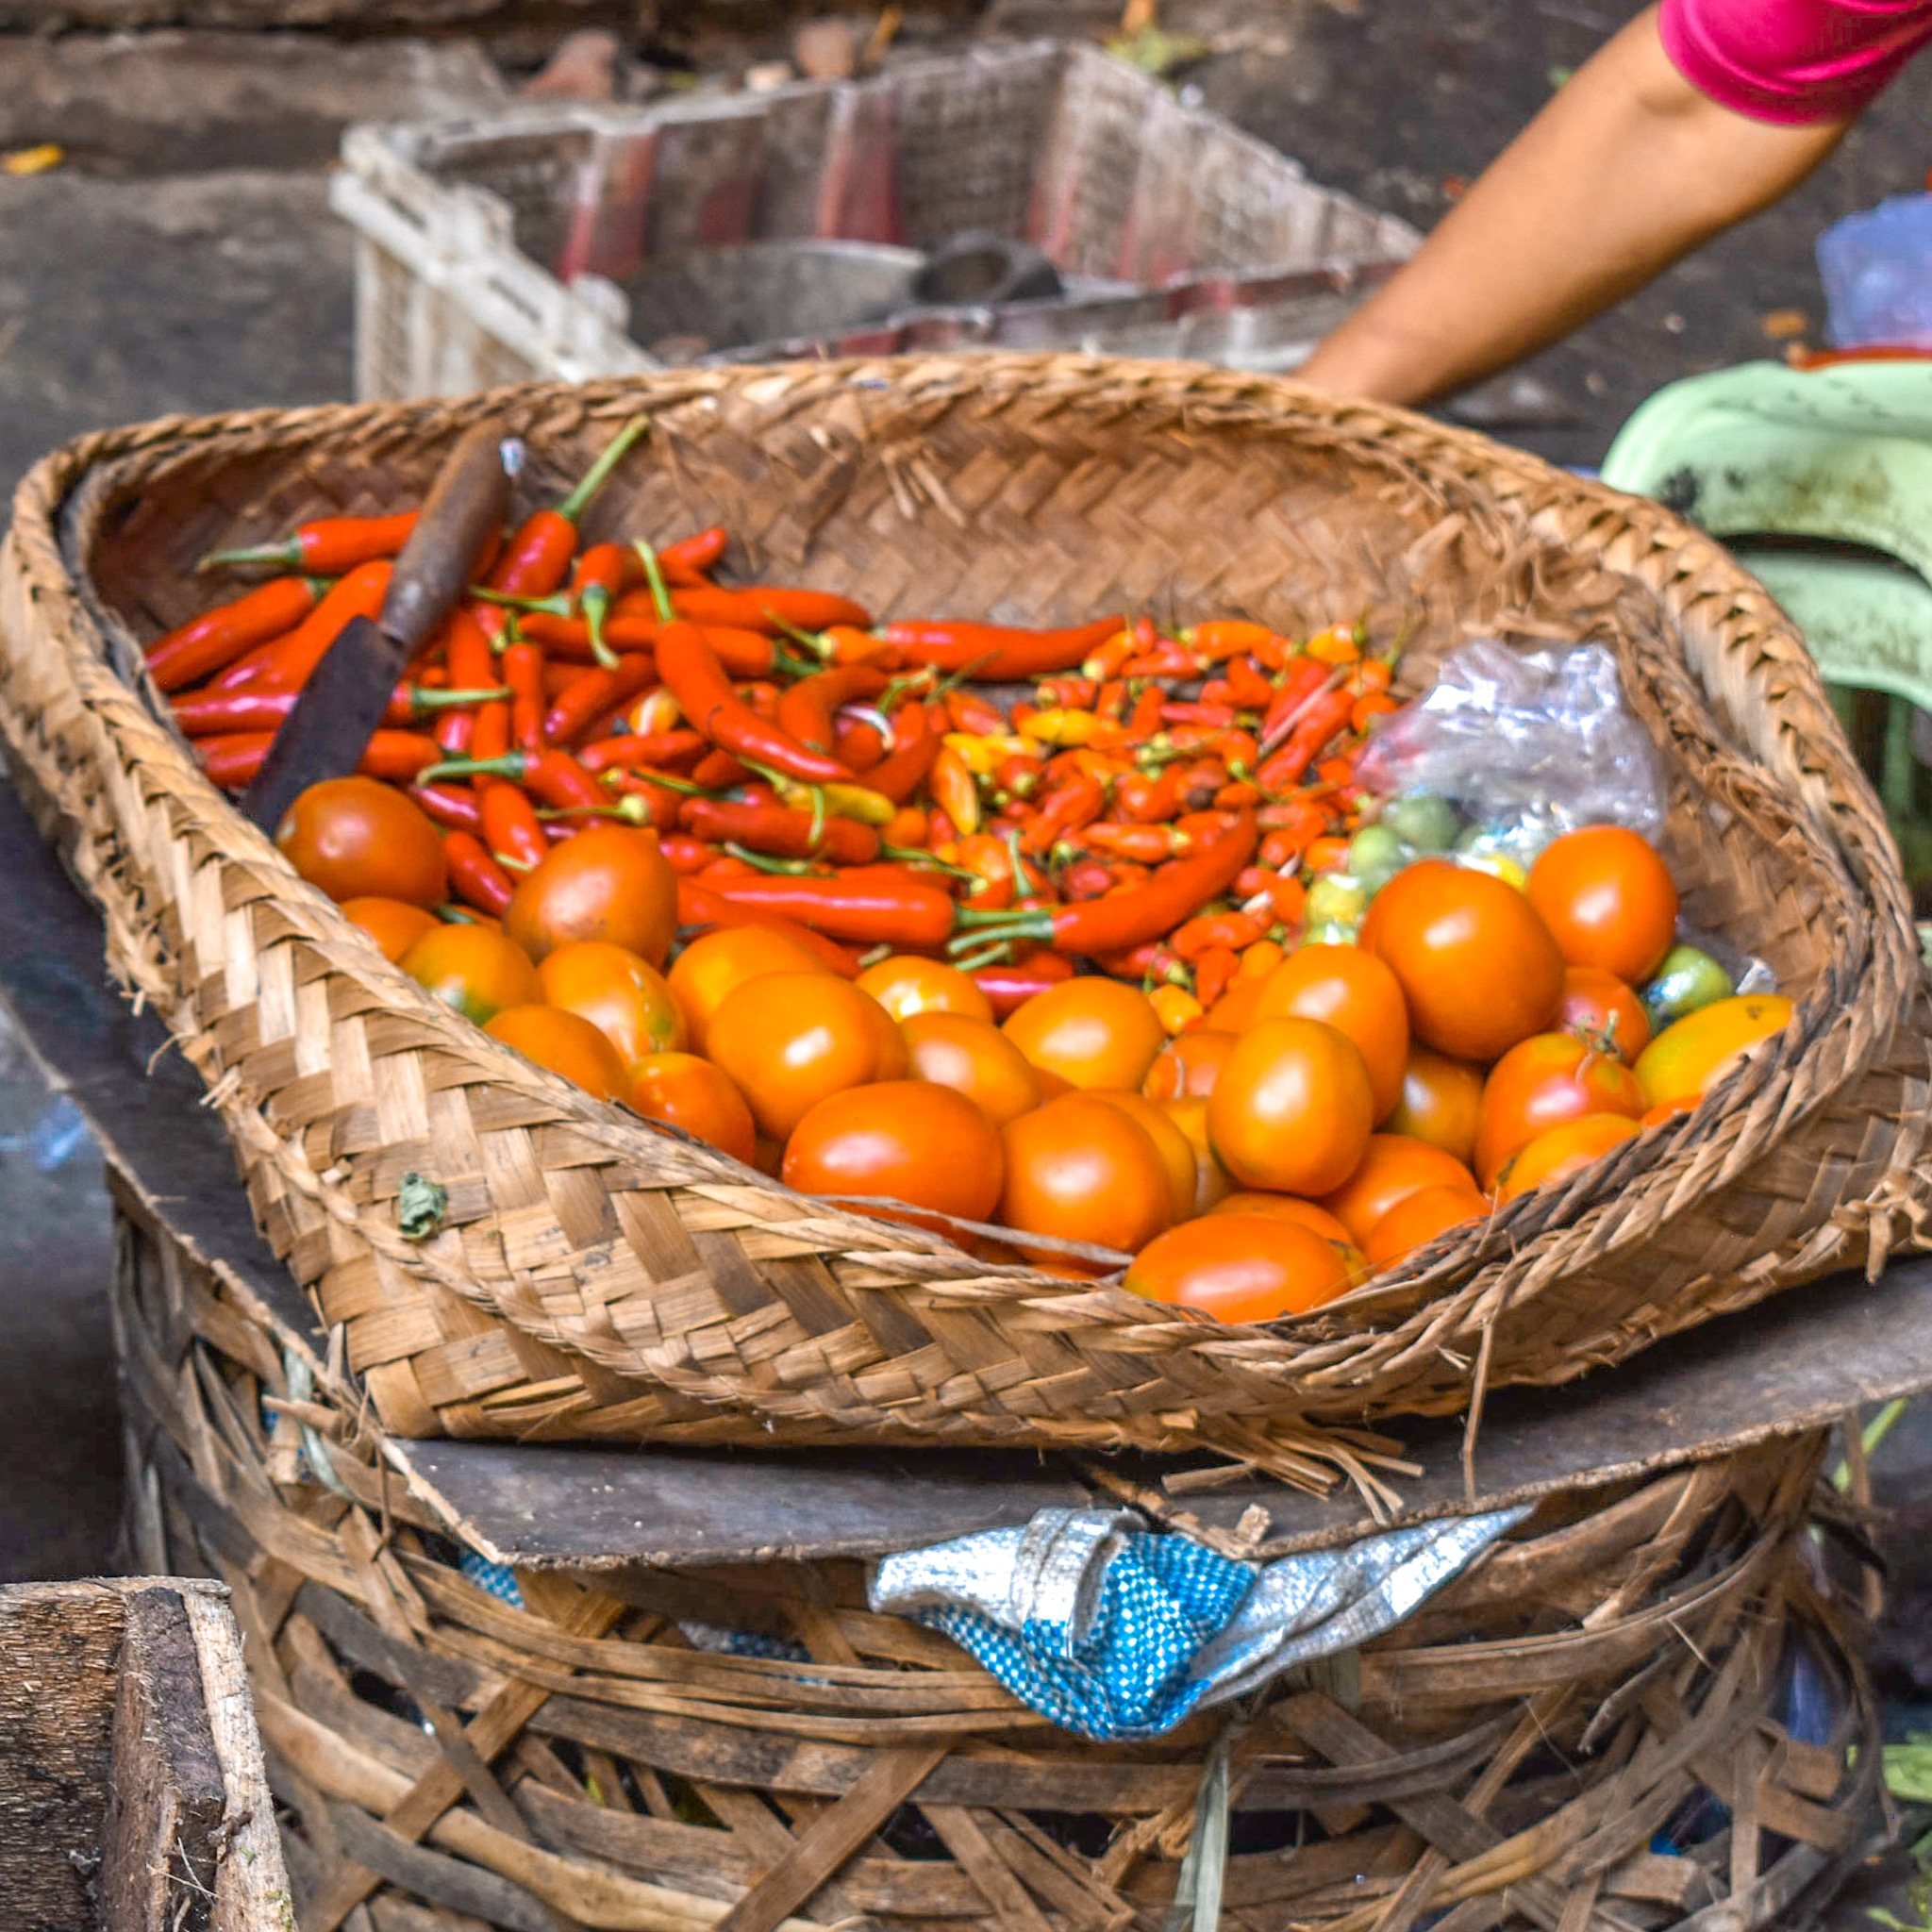 Peppers and Tomatoes at Ubud Market in Indonesia